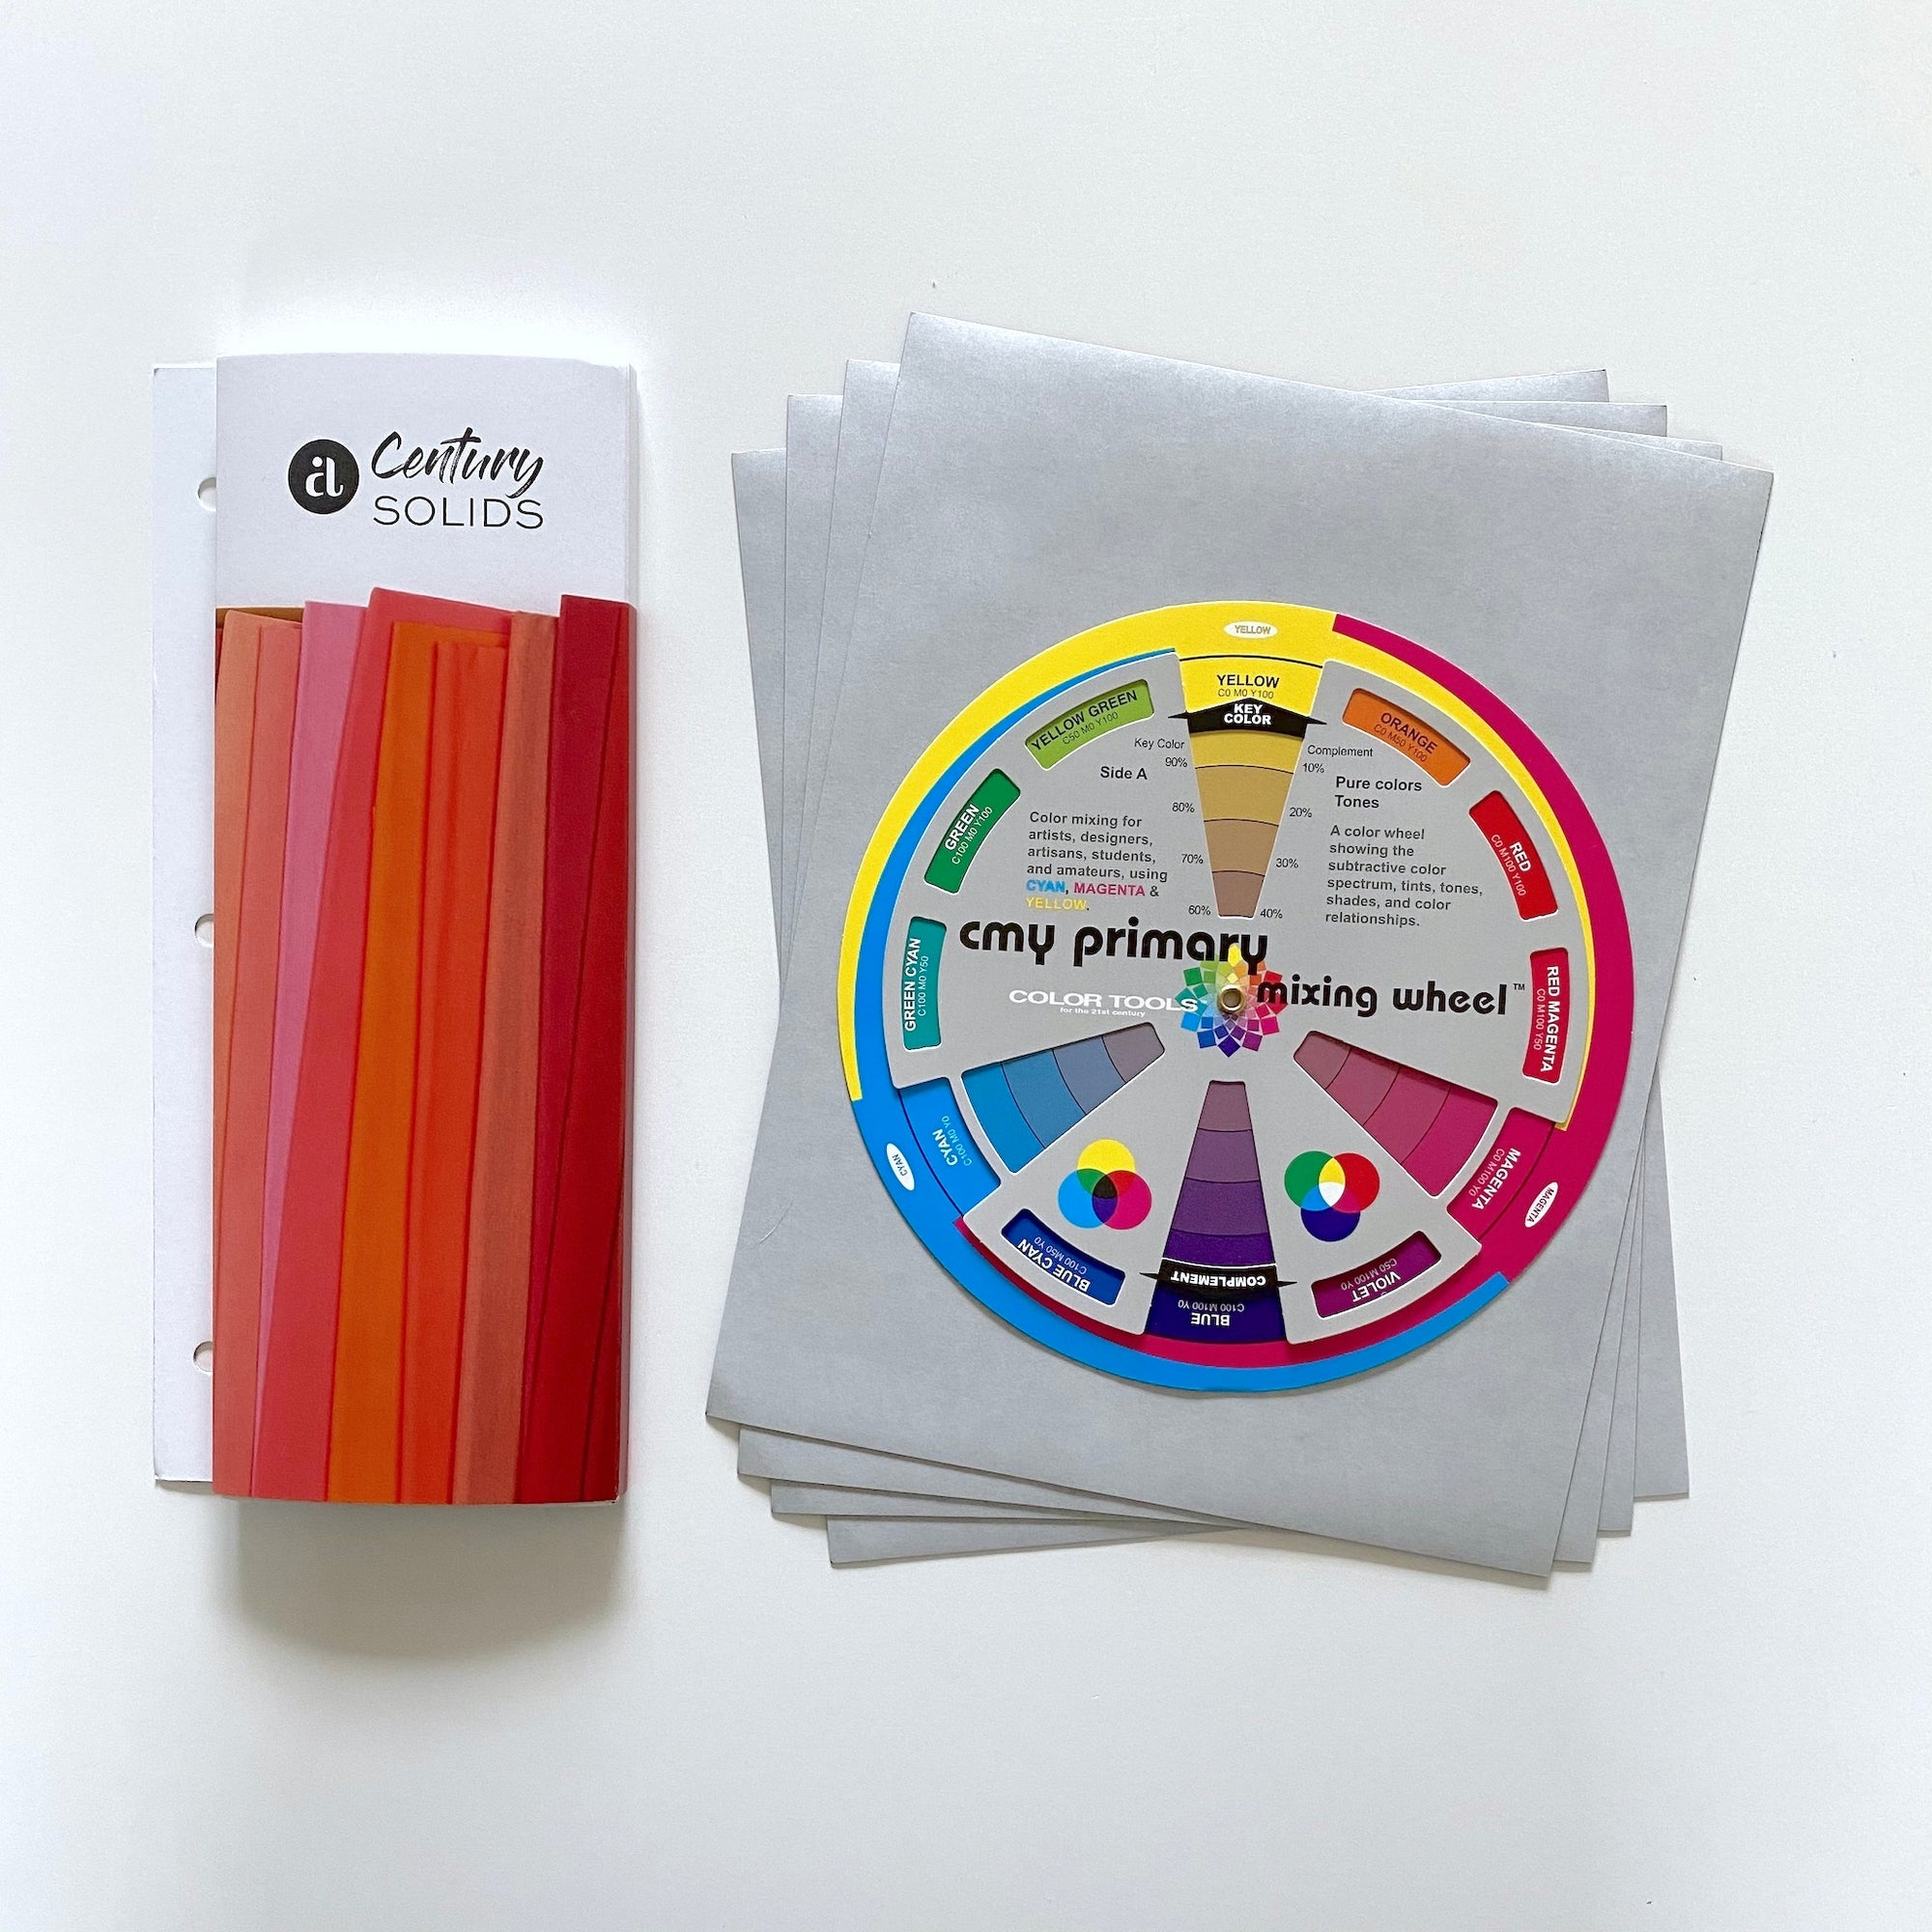 Fabric Swatch Magnet Kit - Century Solids: color card, adhesive magnetic sheets, color wheel